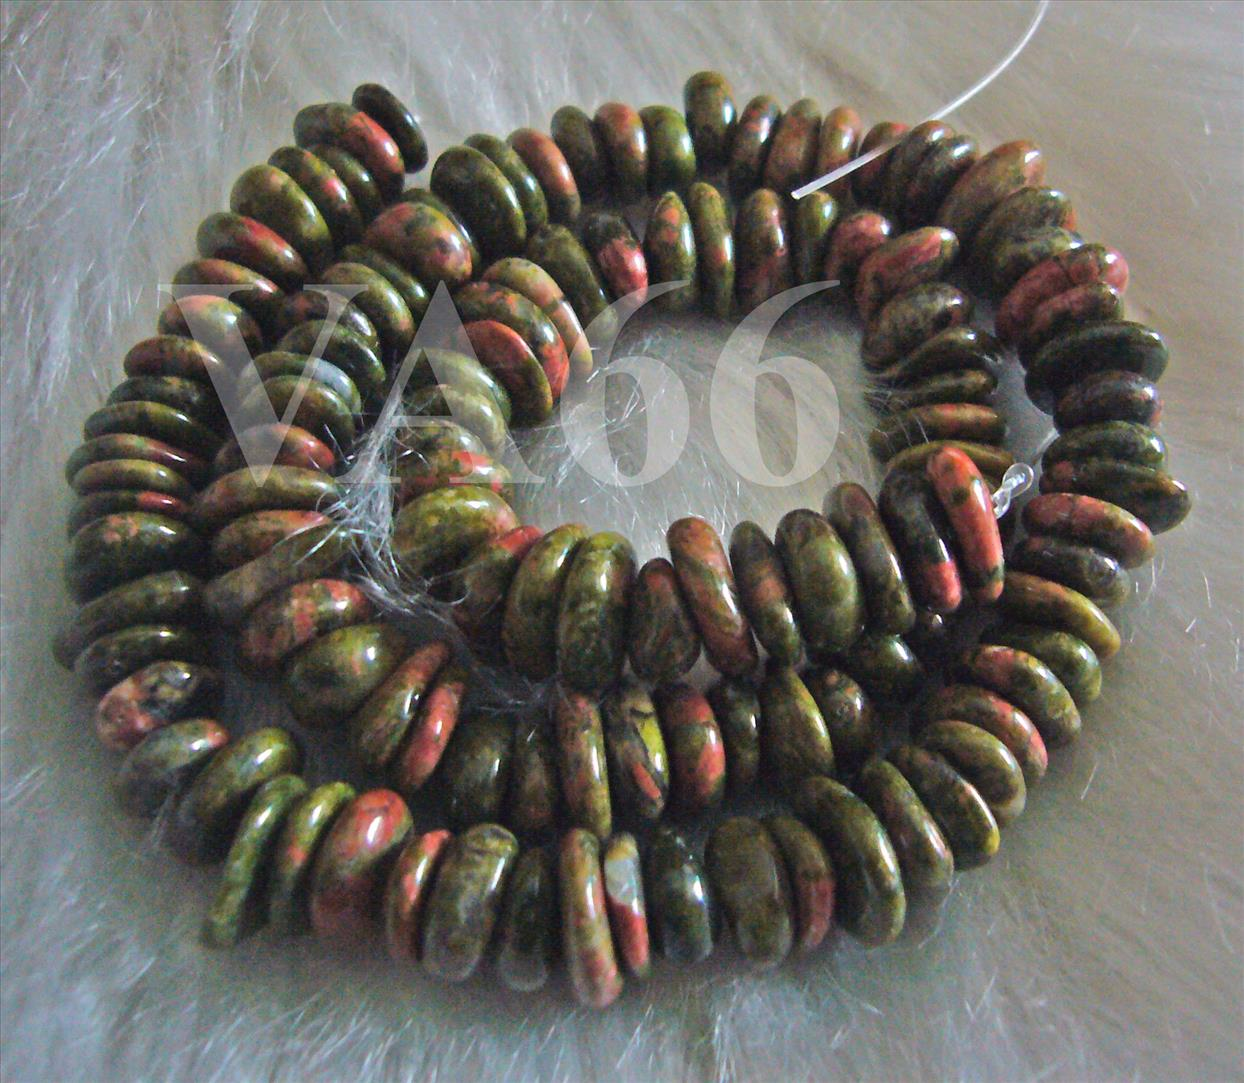 gemstone buy as rough detail product natural stone jasper unakite gift sample raw